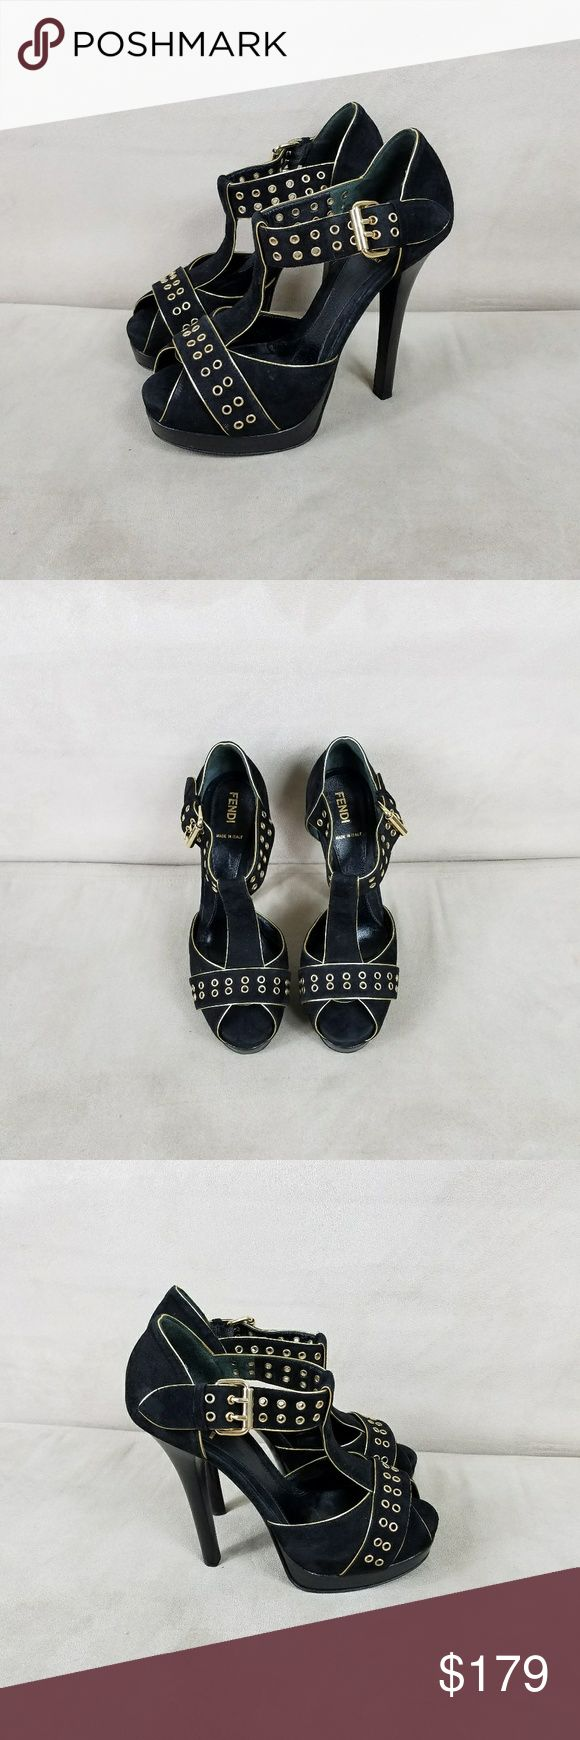 Fendi Suede Grommet Platform Sandals In excellent, preowned condition. They were very well cared for and come from a non smoking, pet free home. Made in Italy. These are a EU 37.5 which is a US 7, not a 7.5. Fendi Shoes Platforms